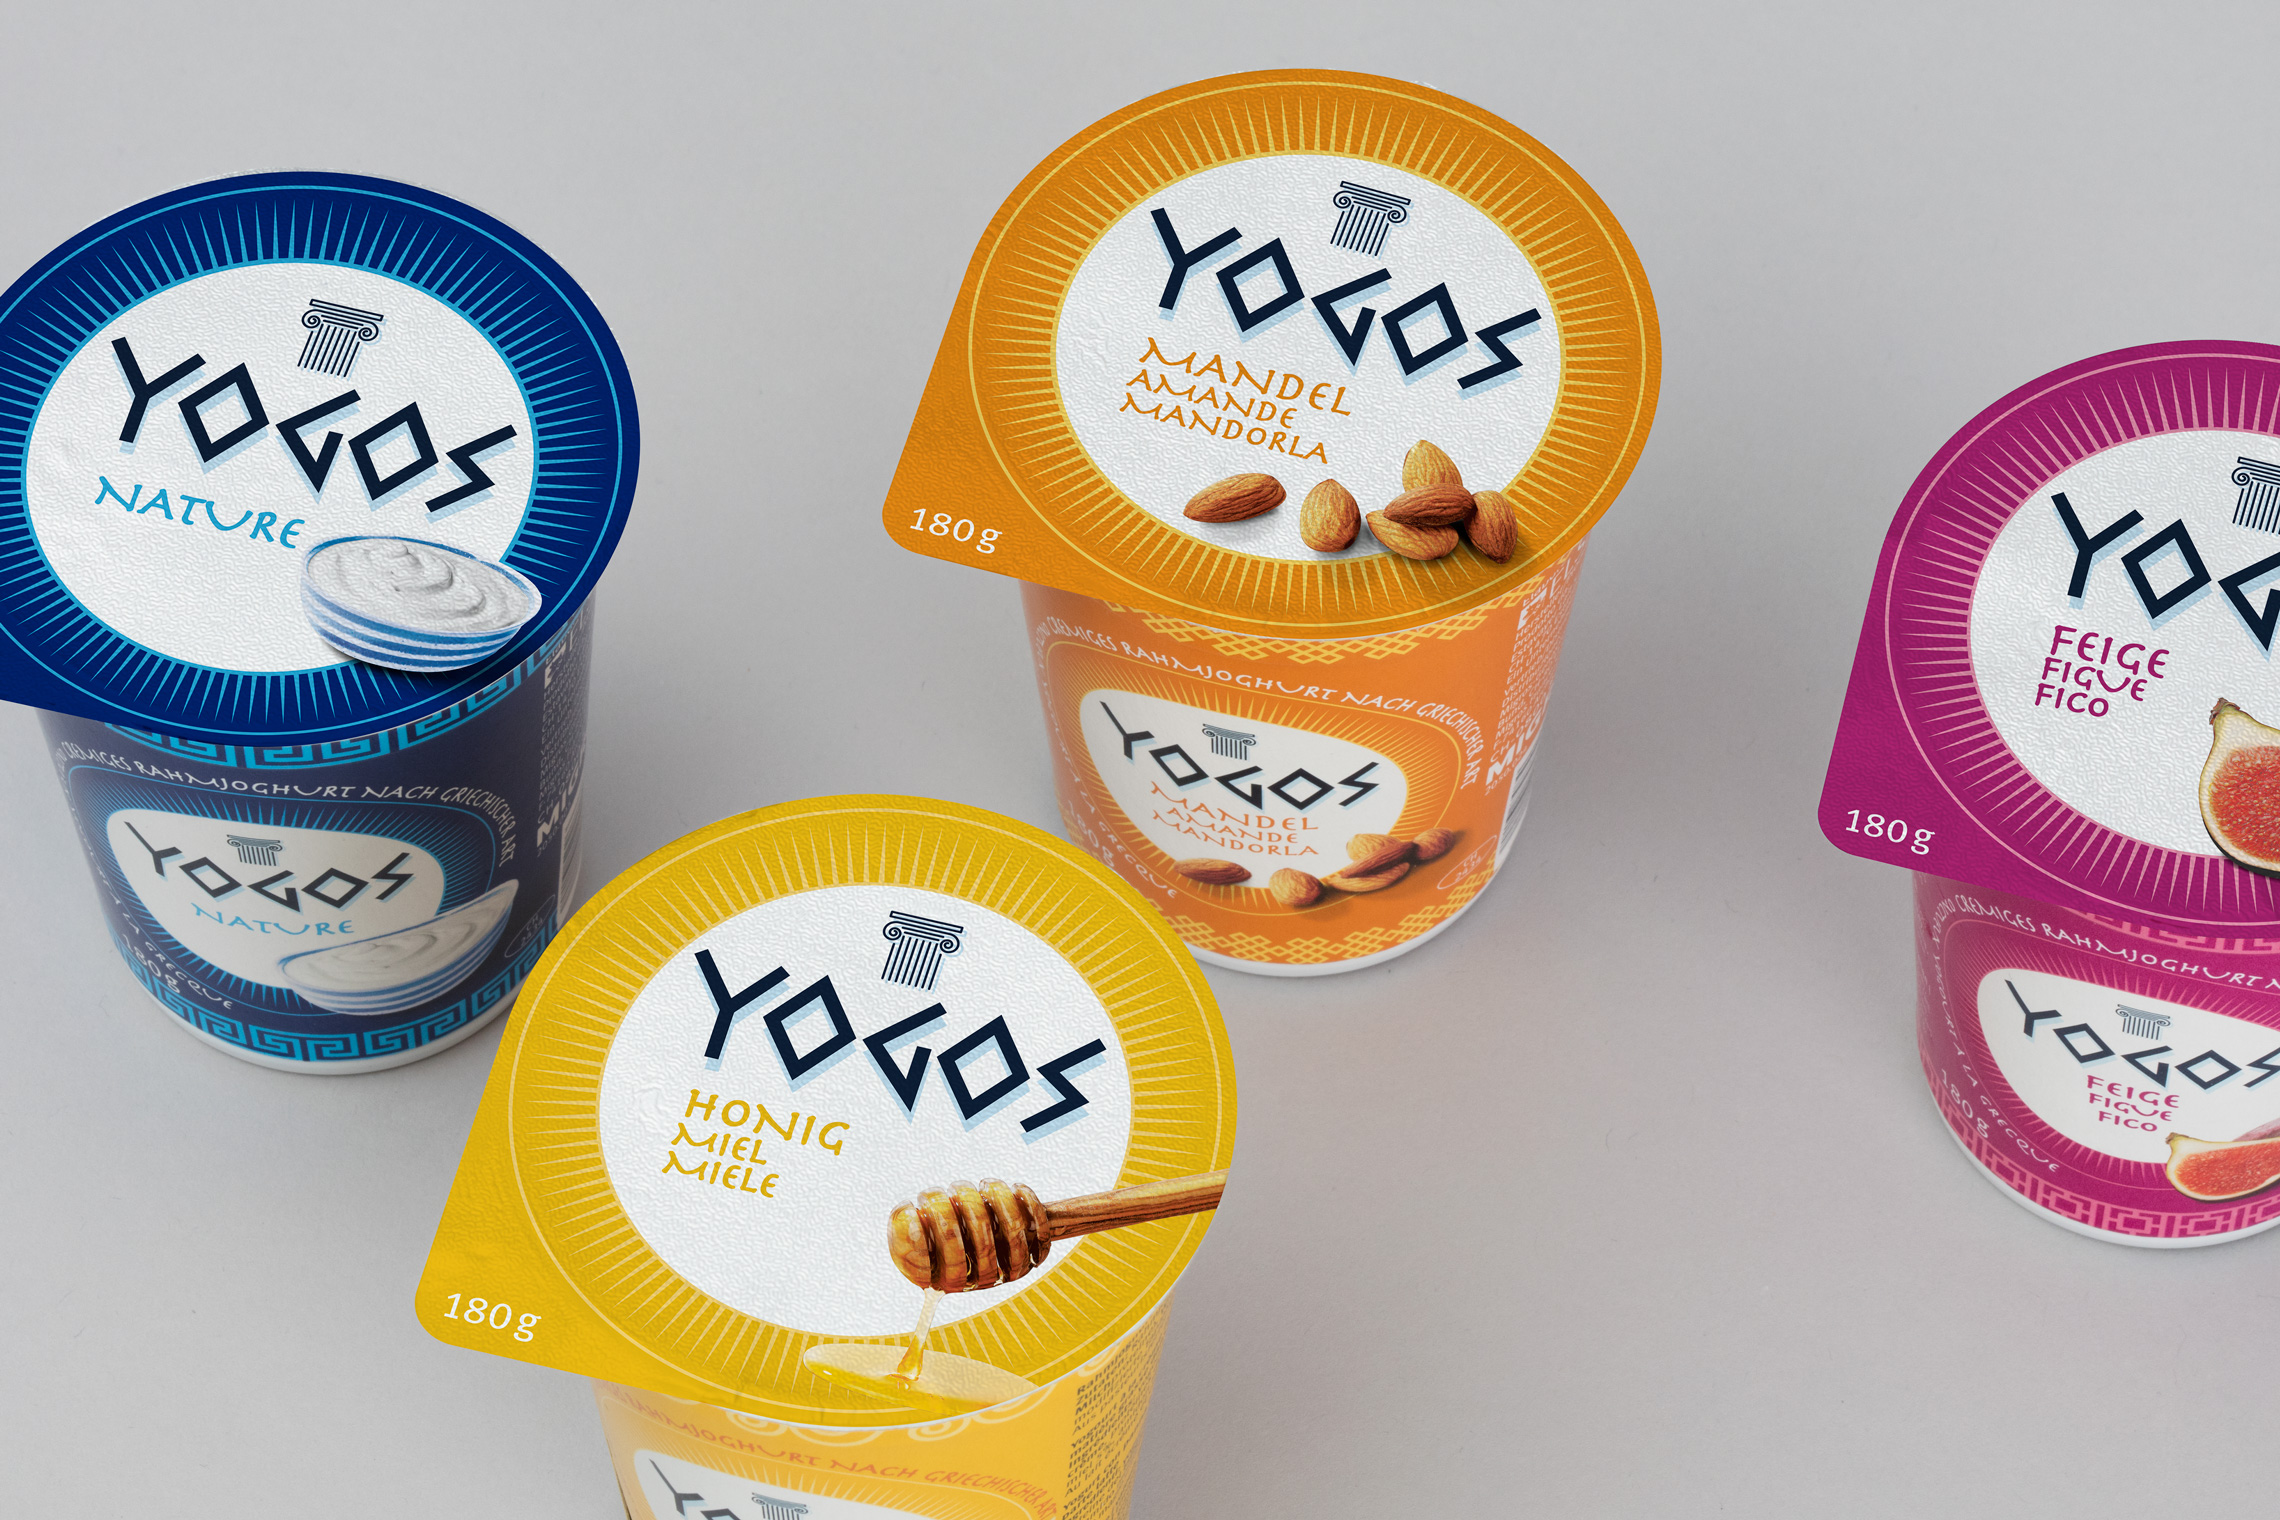 Migros Yogos Packaging Design